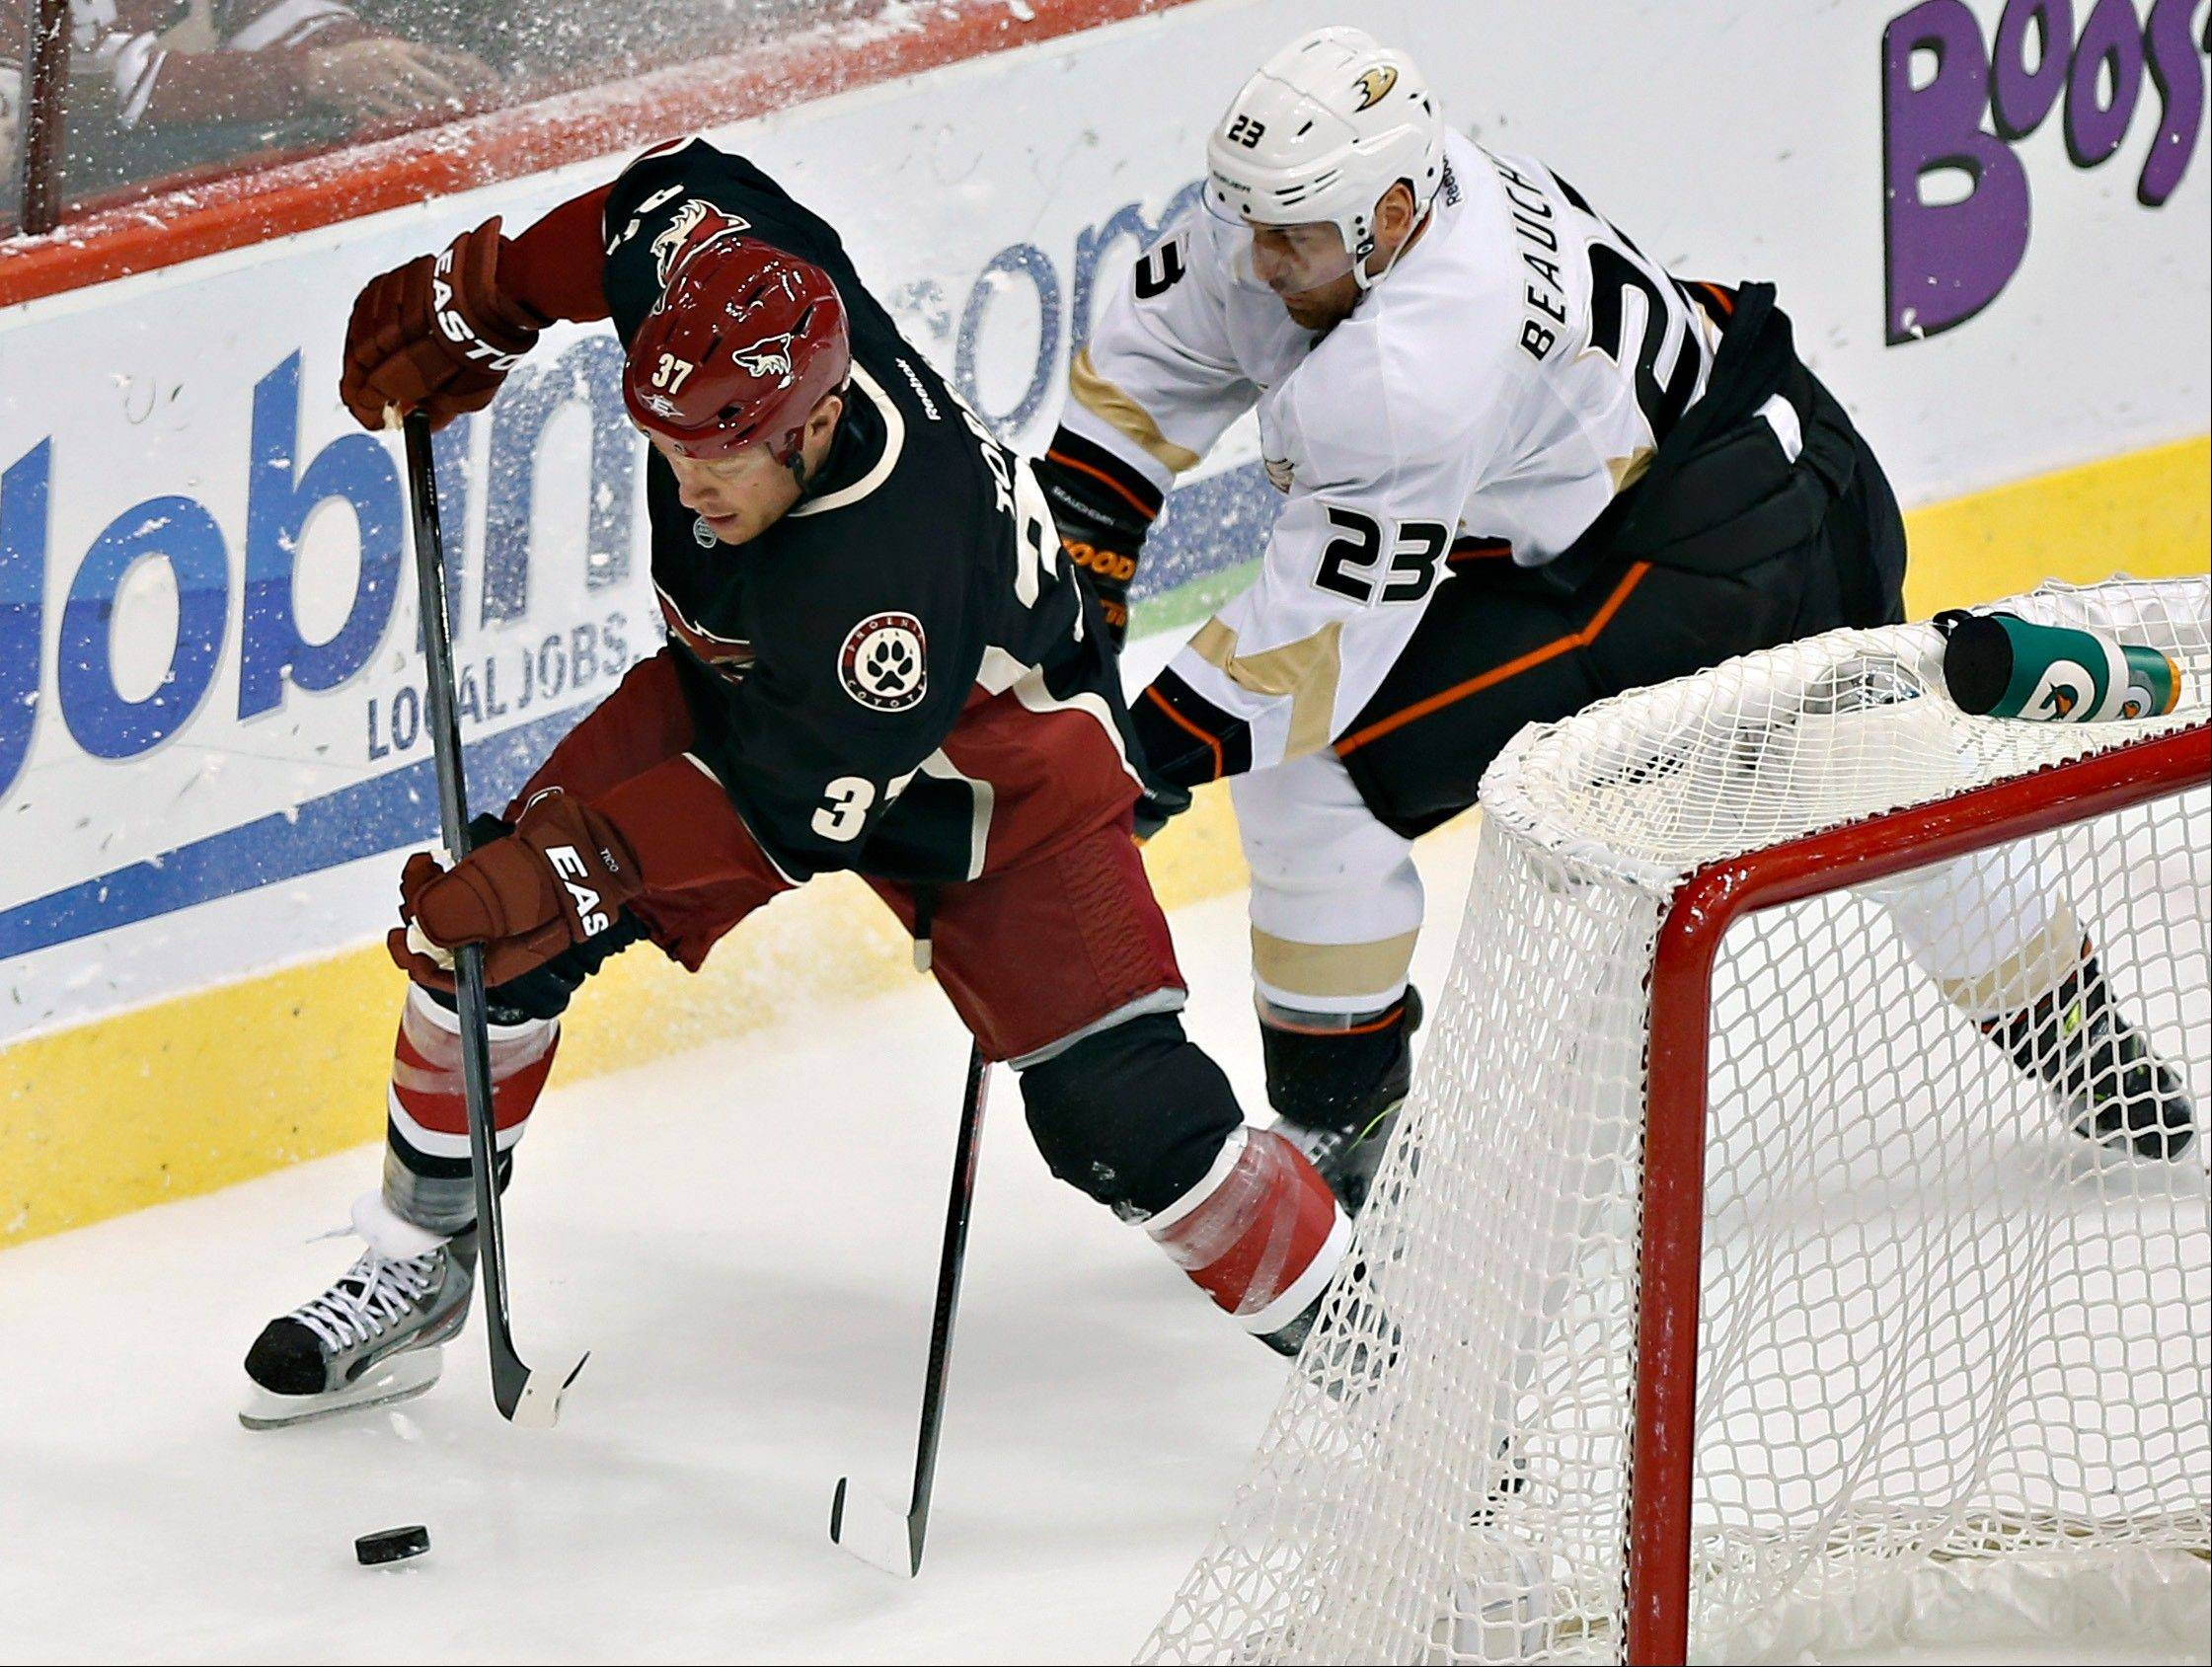 Anaheim Ducks' Francois Beauchemin (23) battles Phoenix Coyotes' Raffi Torres (37) for the puck during the second period of an NHL hockey game, Monday, March 4, 2013, in Glendale, Ariz.